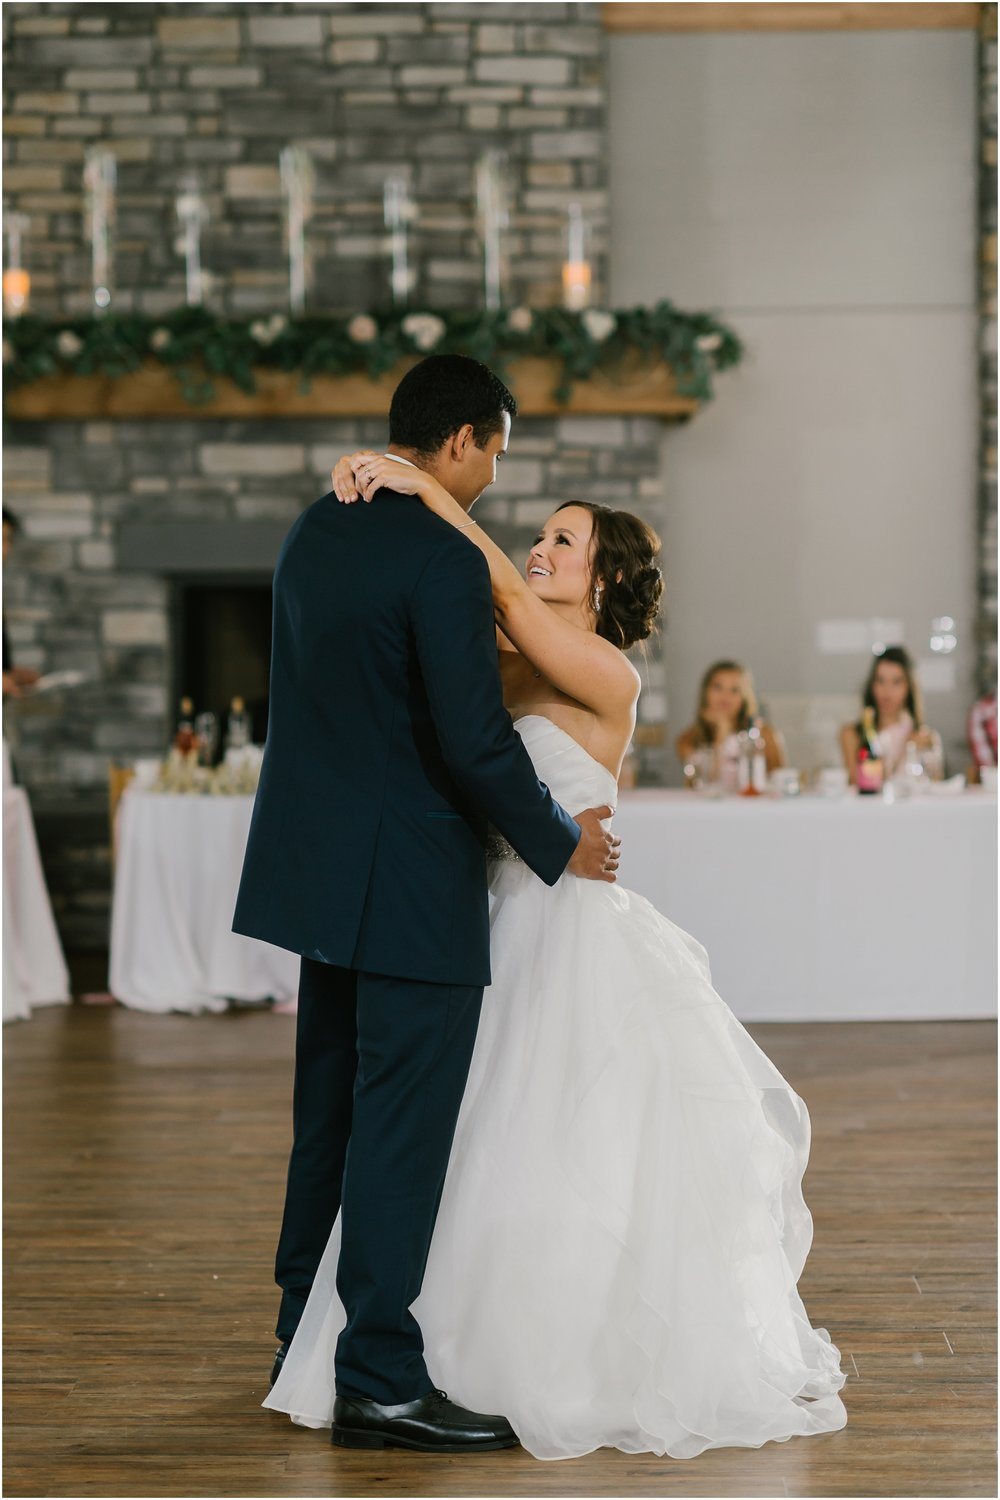 Rebecca_Shehorn_Photography_Indianapolis_Wedding_Photographer_8659.jpg